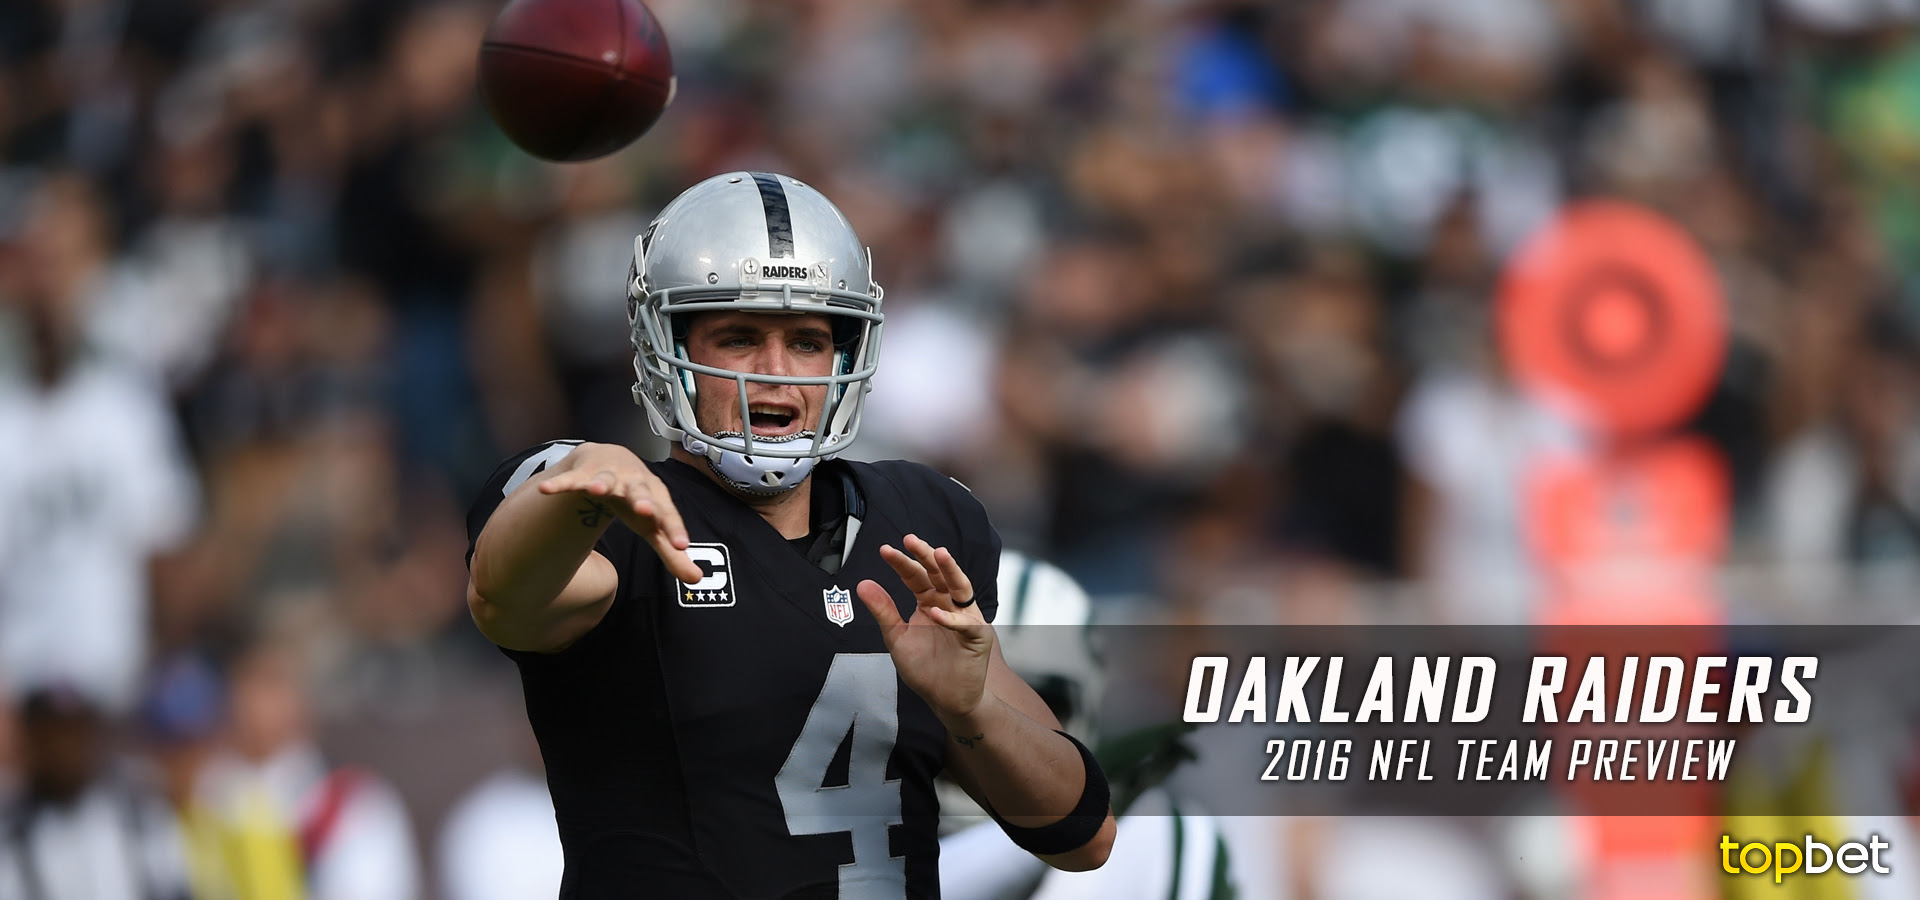 Oakland Raiders 201617 Team Preview Odds